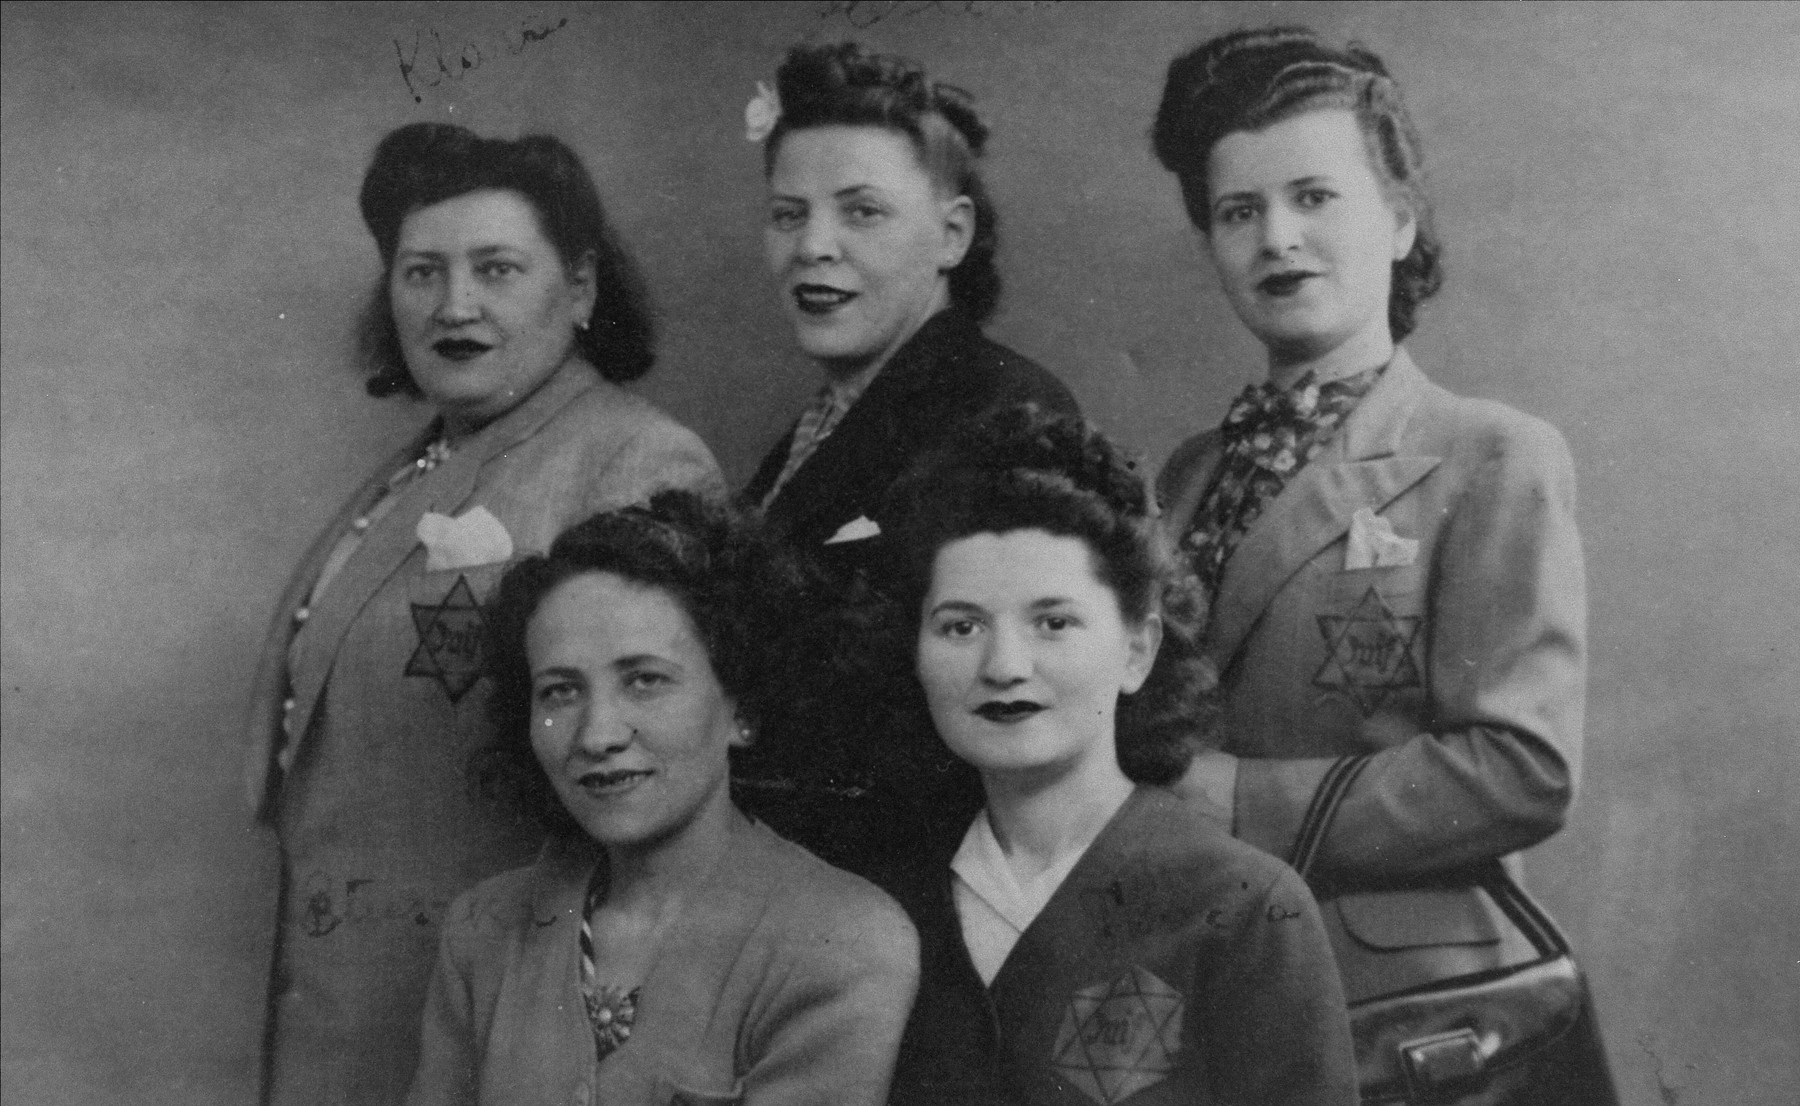 A group of Jewish women in Paris.  Pictured in the back from left to right are Klara, Erna and the donor, Denise Klein.  Sitting in the front are Bluszka and Tovcia.  The woman on the bottom left has also been identified as Jetta (or Ida) Kielmanowicz.